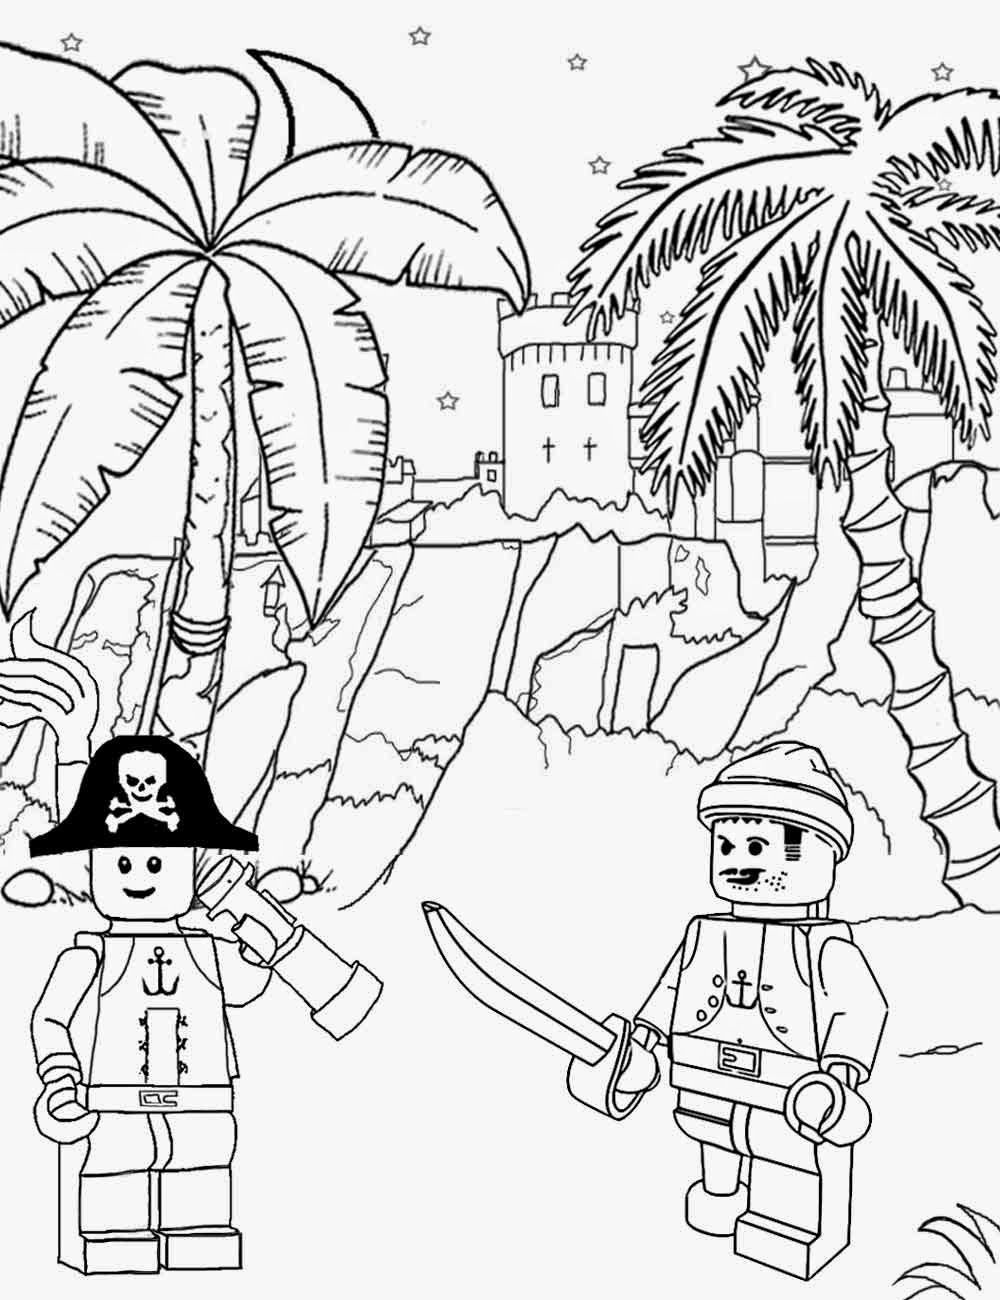 free lego coloring pages to print free coloring pages printable pictures to color kids lego pages print free coloring to